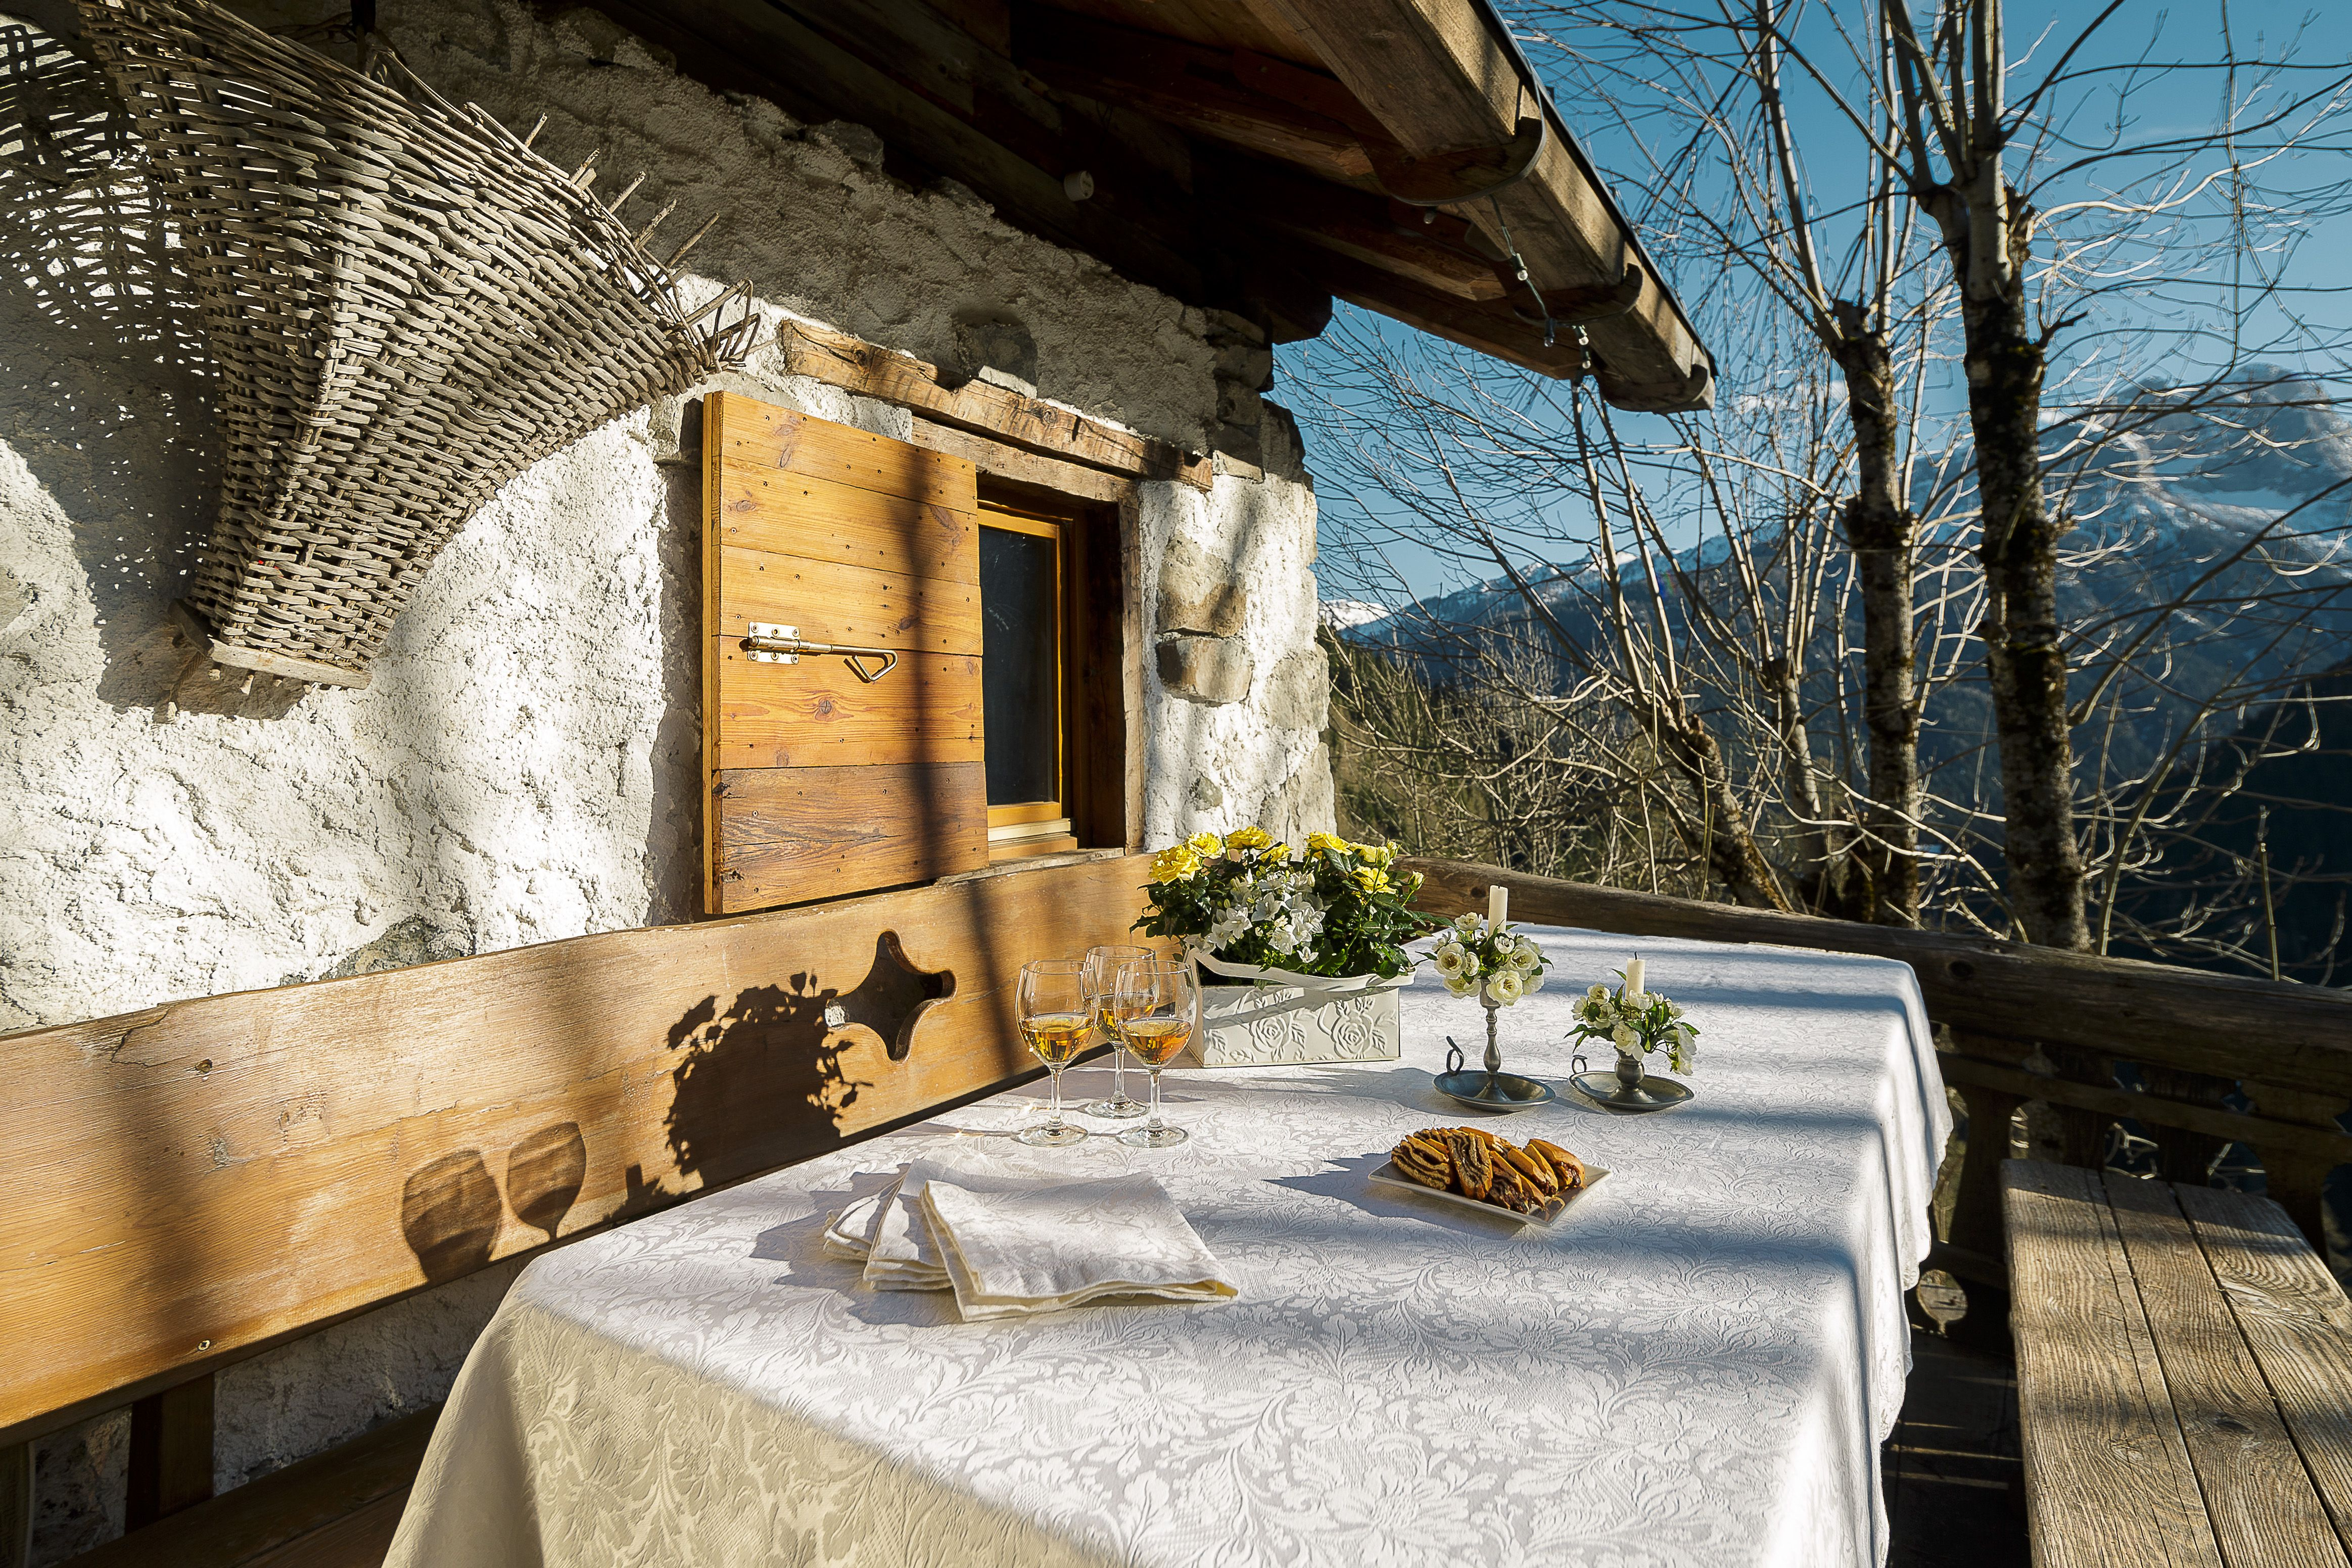 Our Lisa tablecloth makes this table very inviting. Would you like to join us for lunch?  www.viewofcortina.com